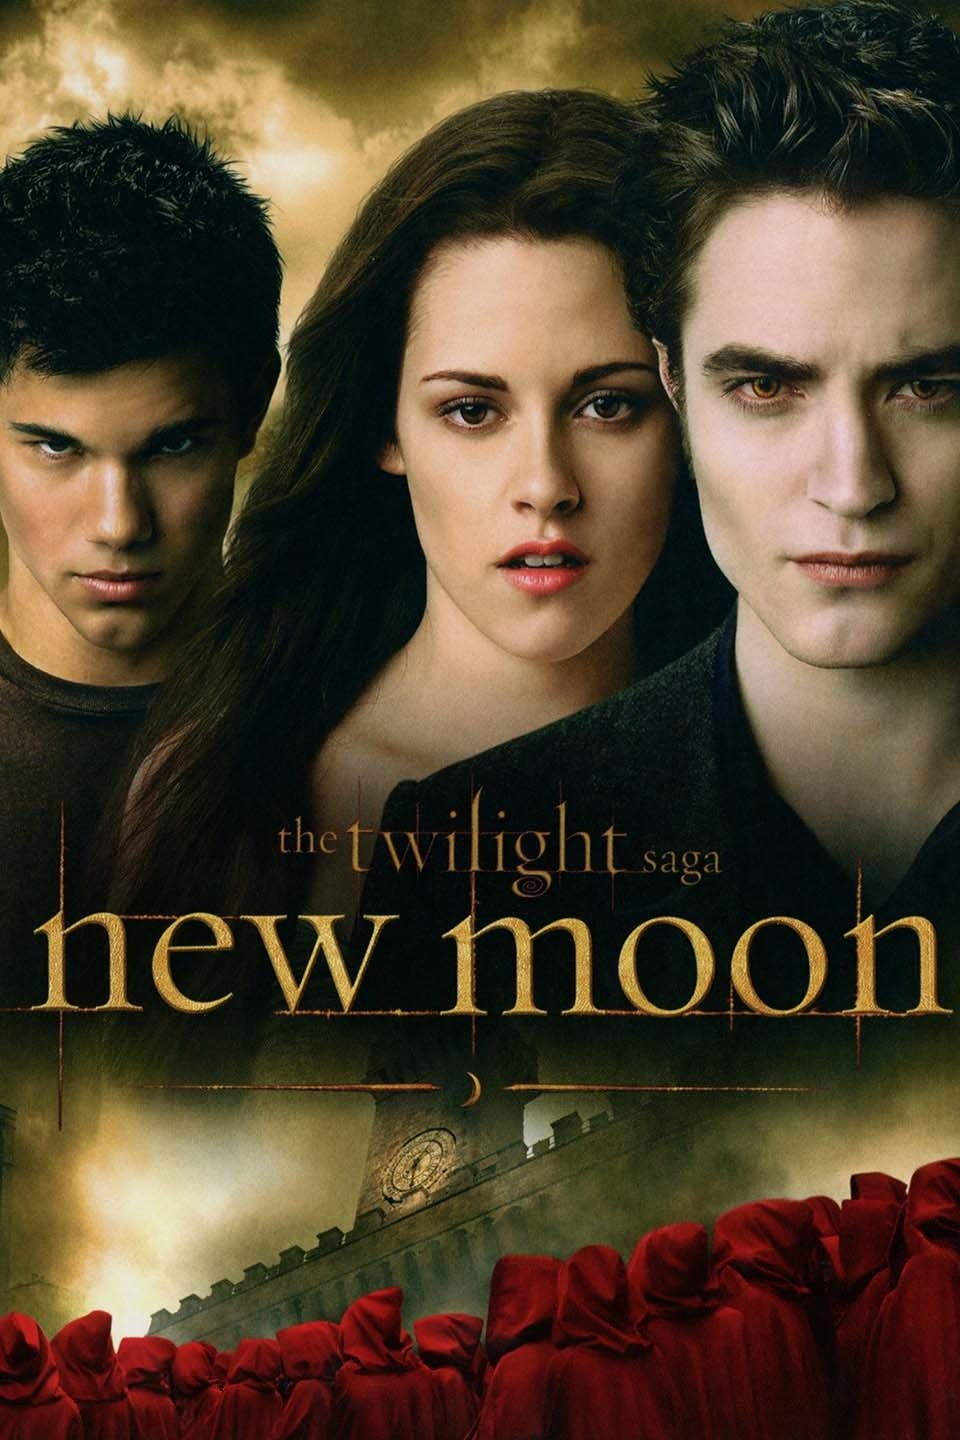 The Twilight Saga New Moon Full Movie Download BluRay